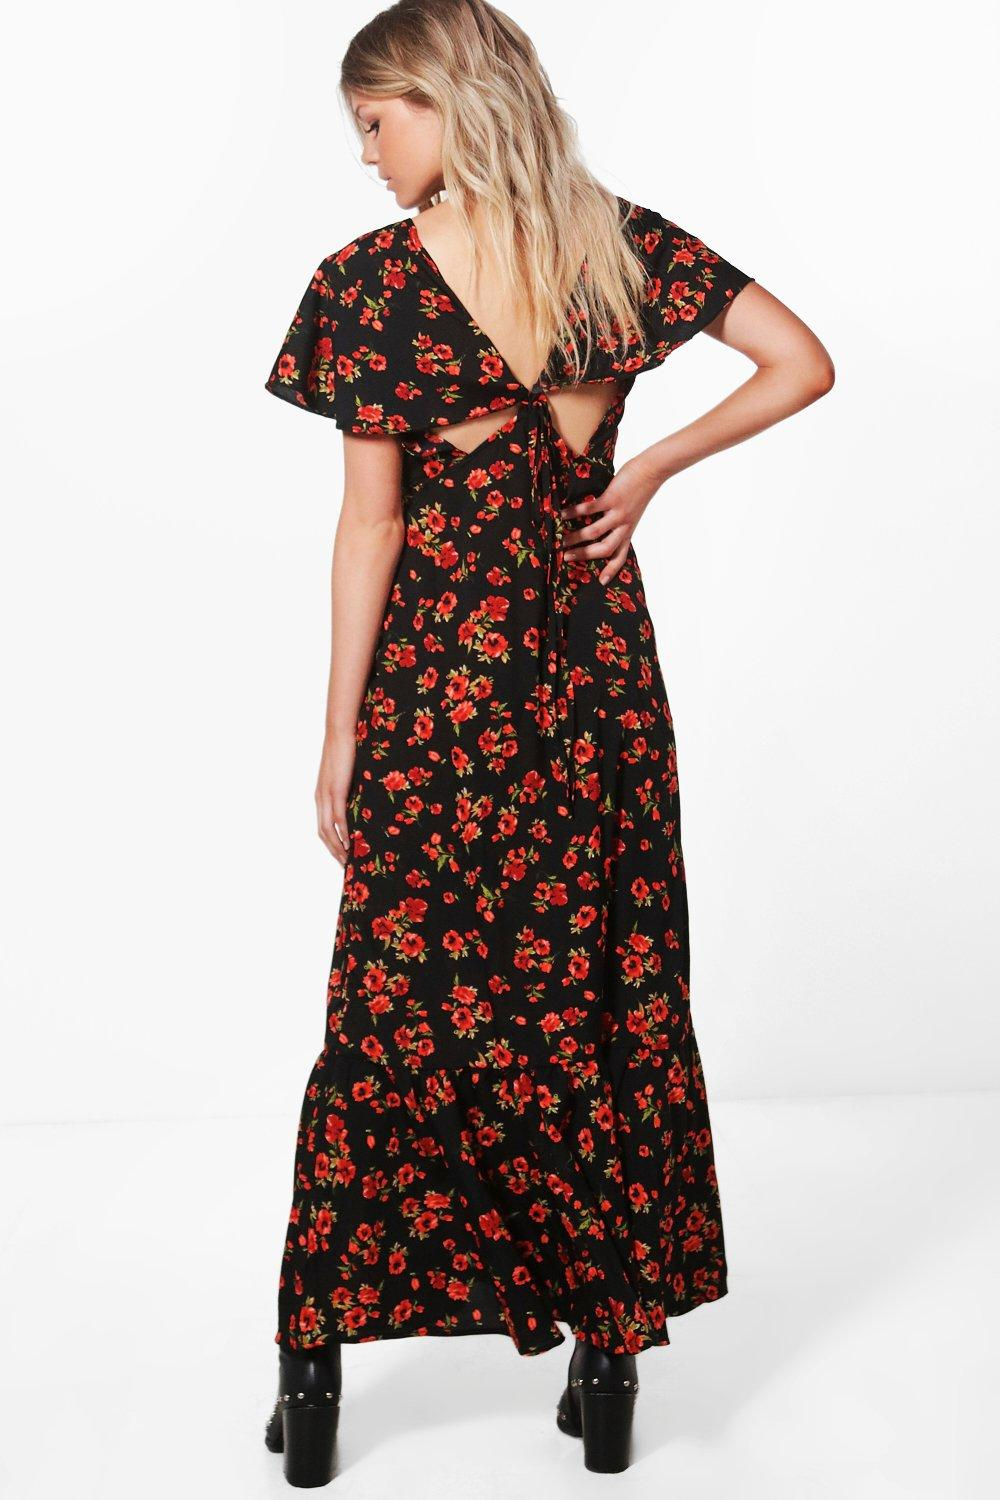 bddc0aab3ed Womens Black Petite Hannah Floral Tie Back Maxi Dress. Hover to zoom